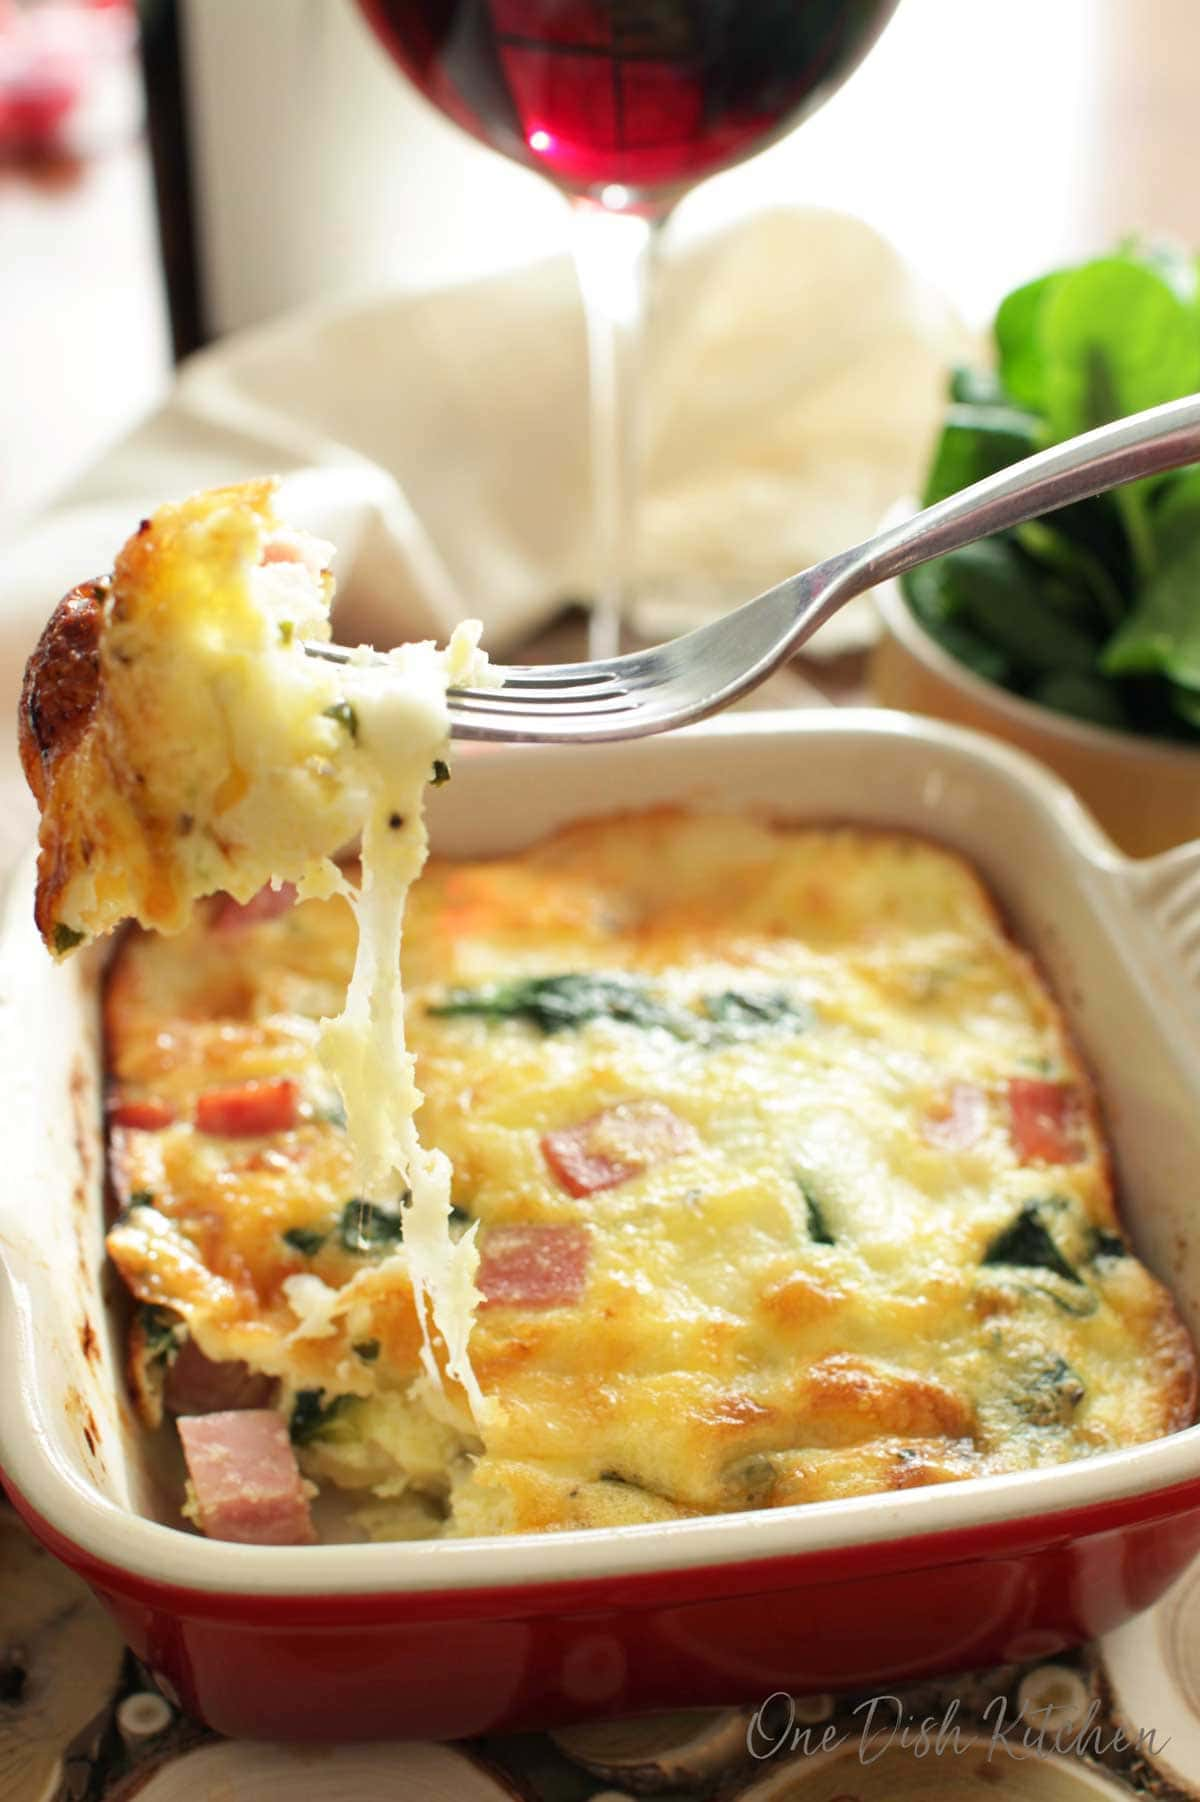 Cheese hanging off a fork in a spinach quiche with a glass of red wine in the background